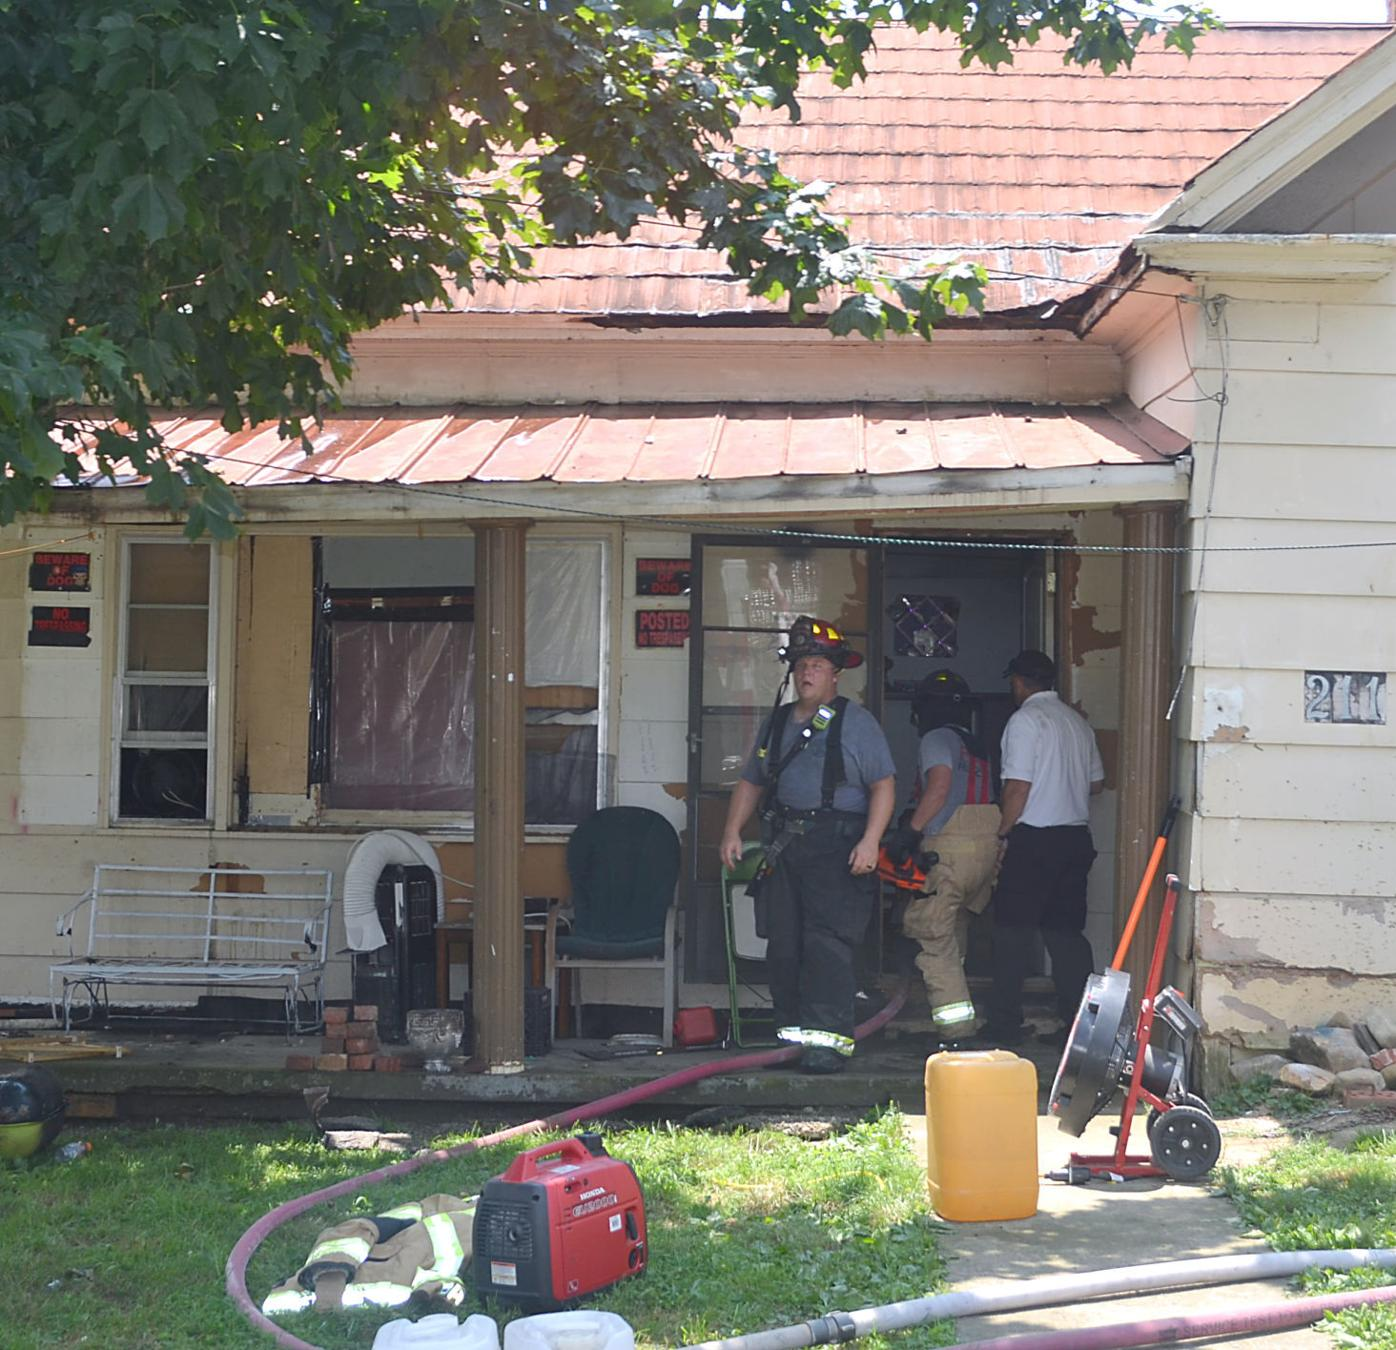 Firefighters Outside Front Door Of House